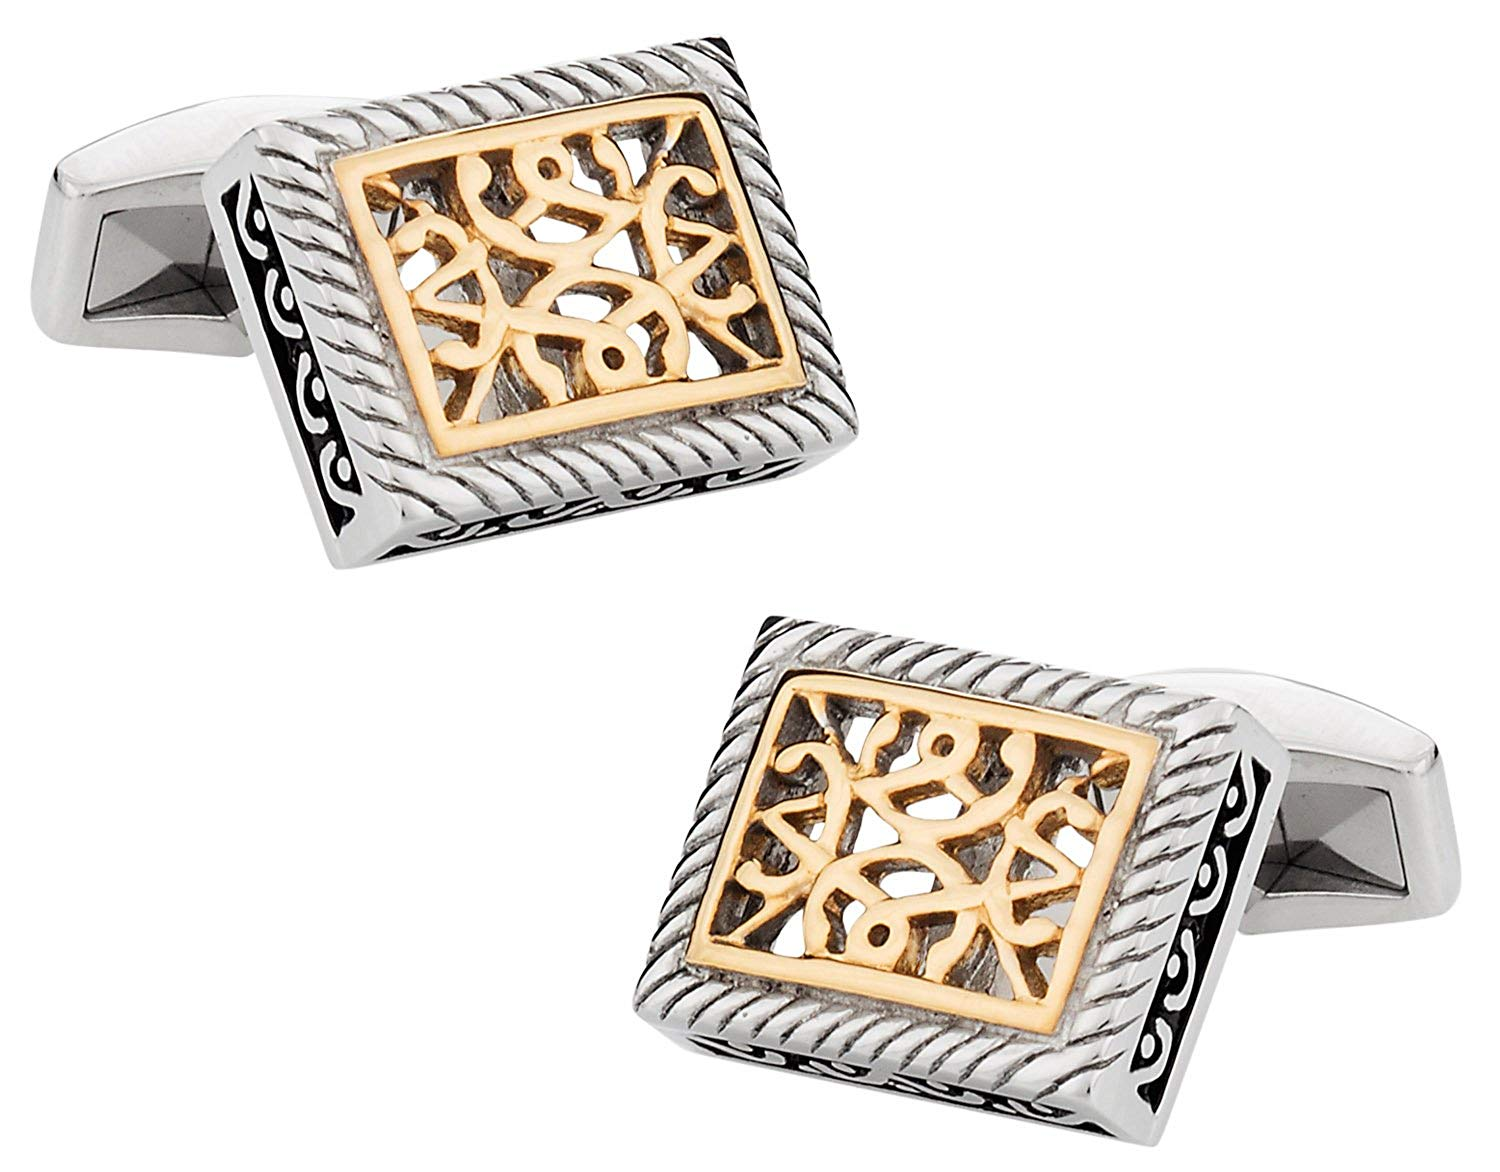 Cuff-Daddy Ornate Two-Tone Stainless Steel Cufflinks with Presentation Box